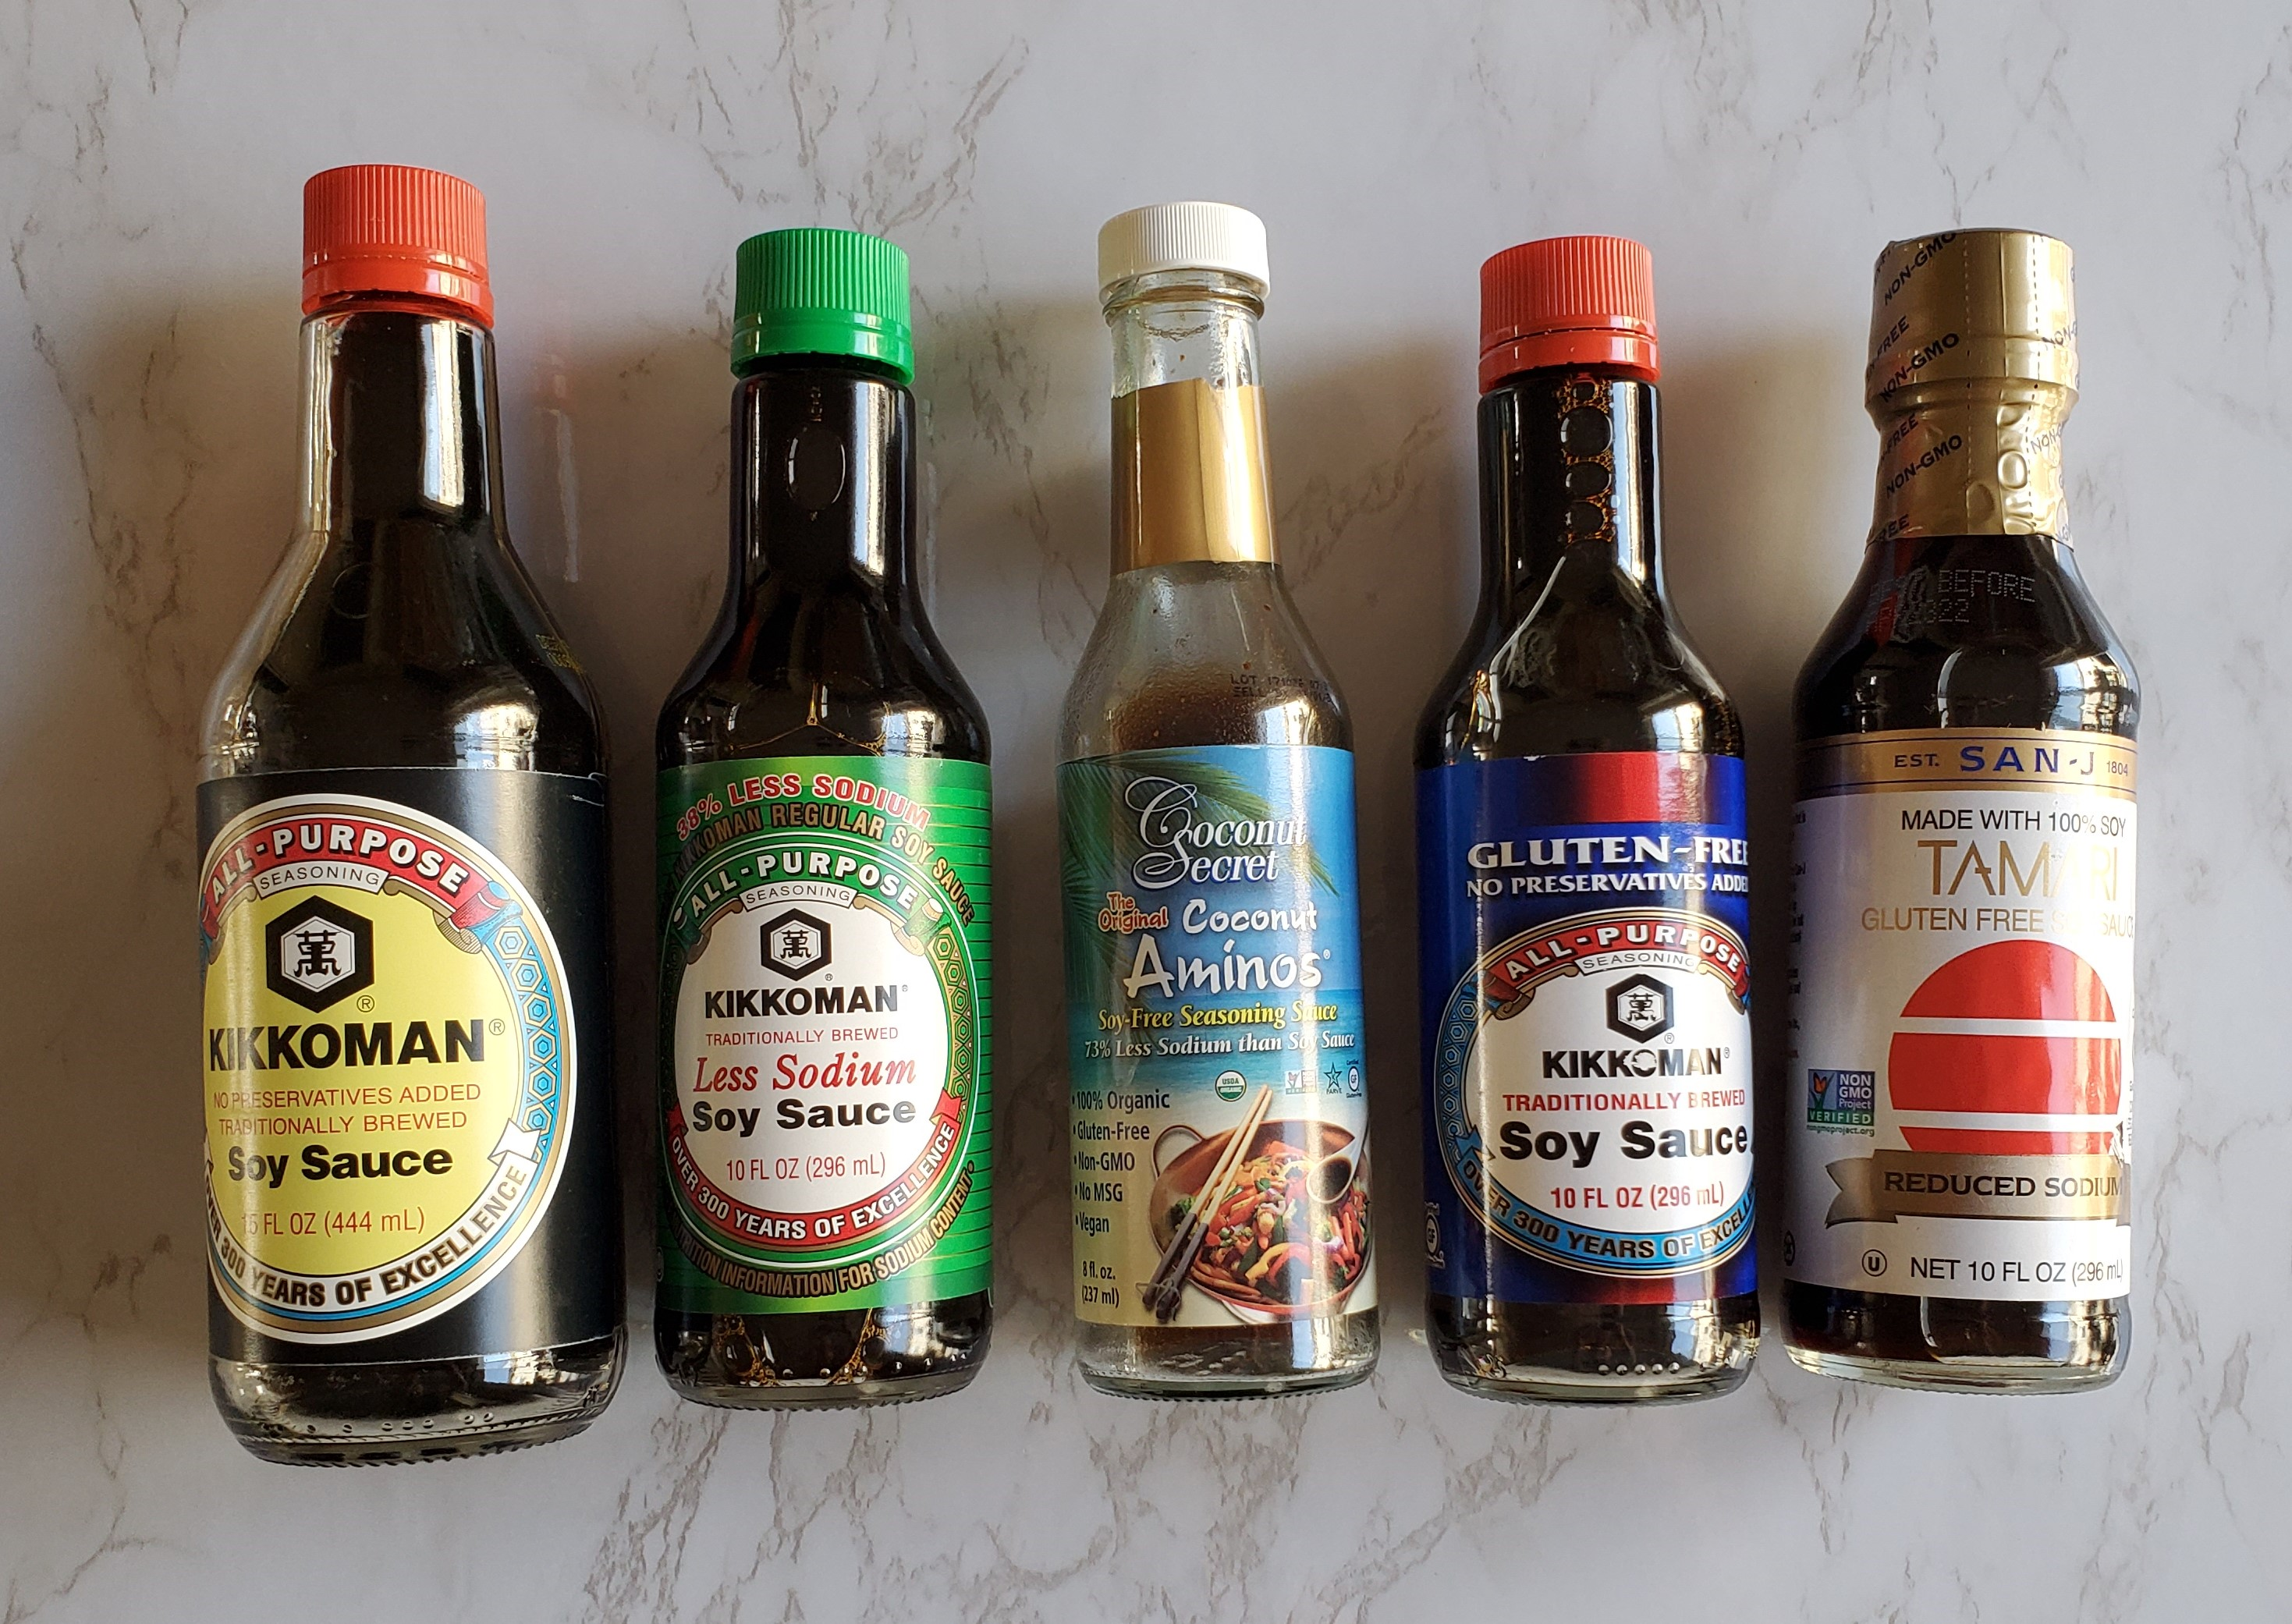 From left to right, Kikkoman Original Soy sauce, less sodium soy sauce, coconut aminos, GF soy sauce and Tamari.